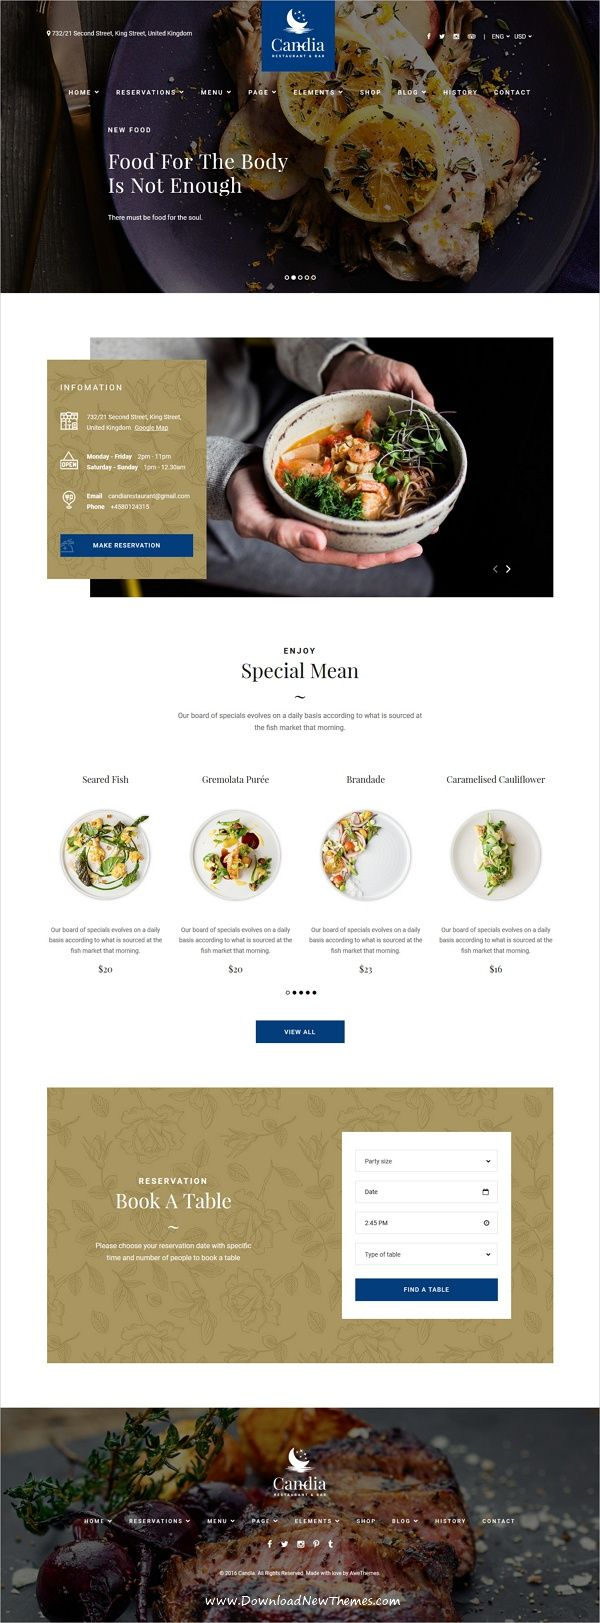 Candia Is Wonderful 3in1 Responsive Html Bootstrap Template For